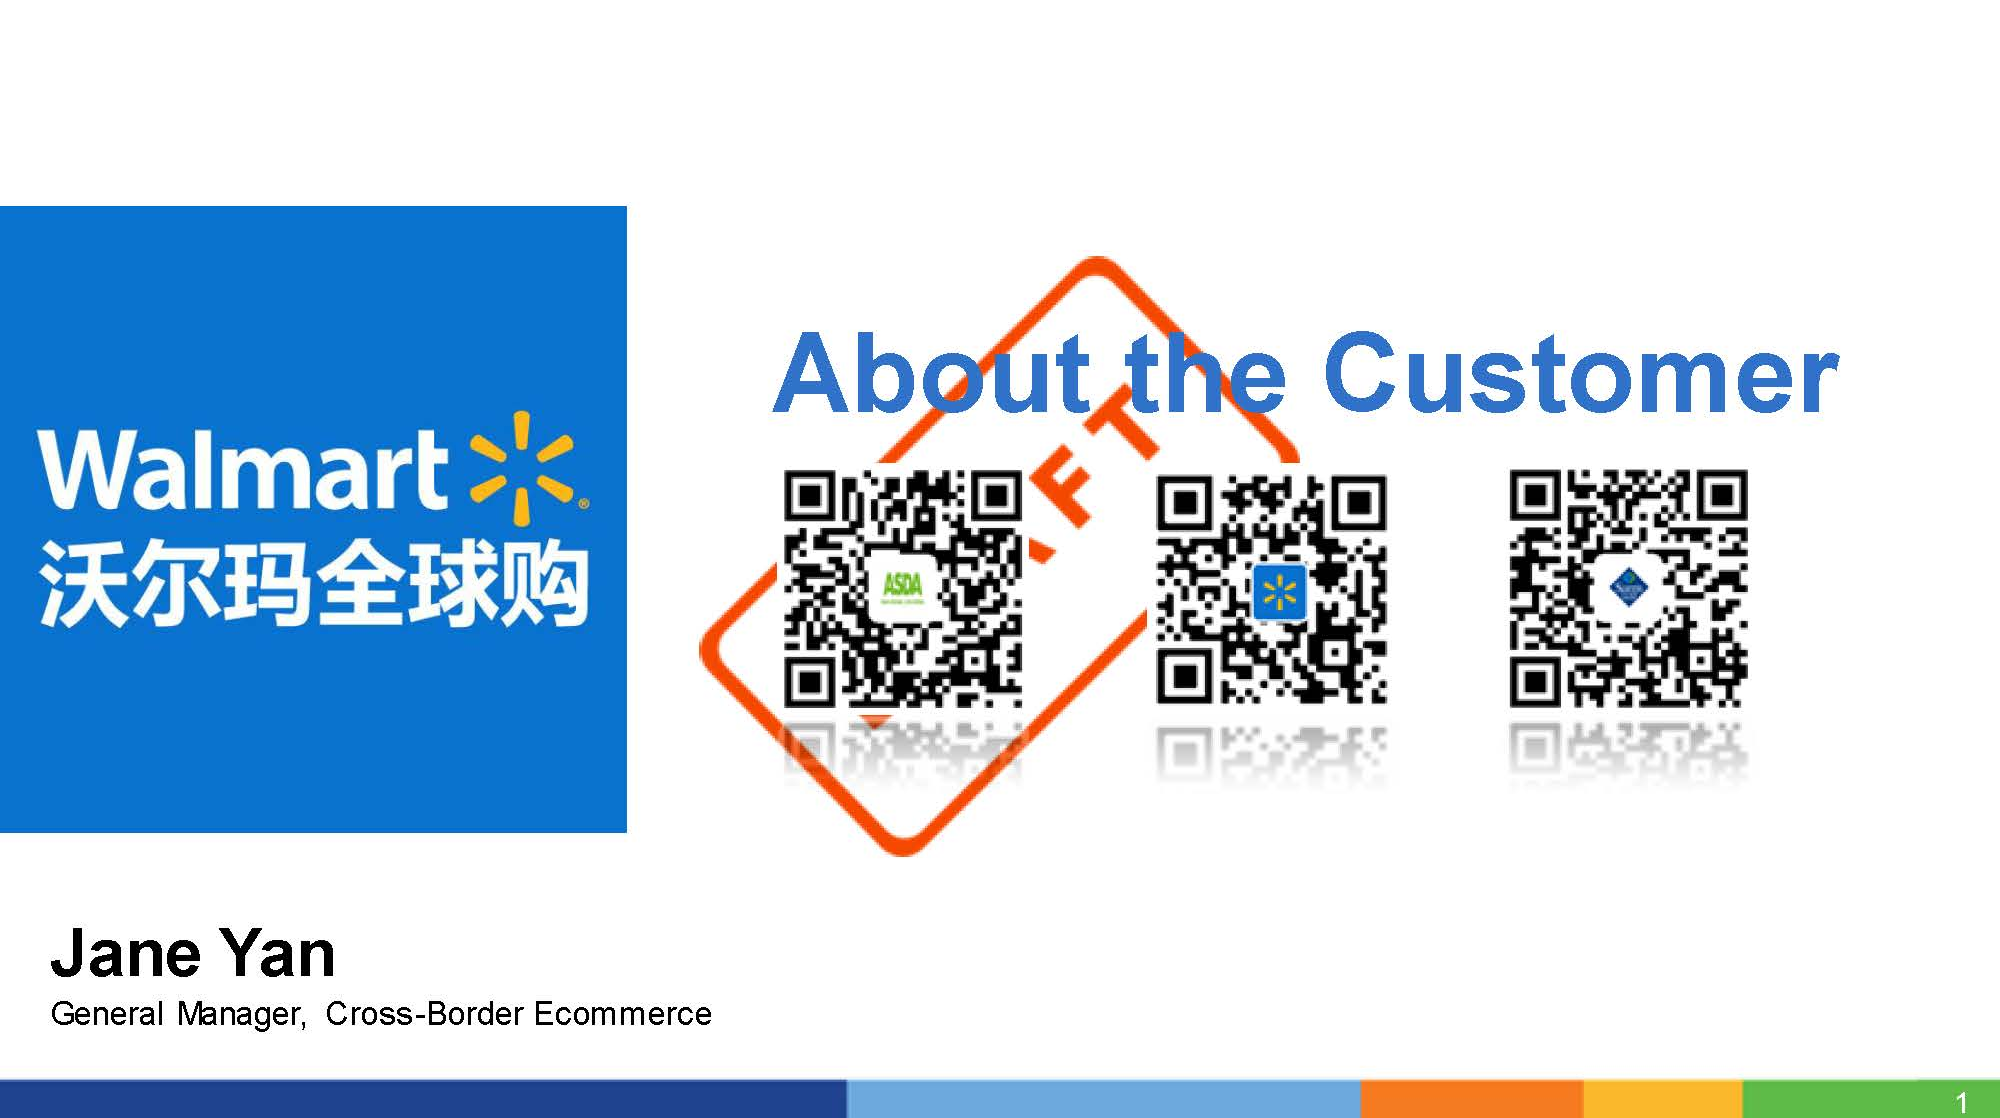 Download the past presentation from Jane Yan, Walmart -  About the Customer